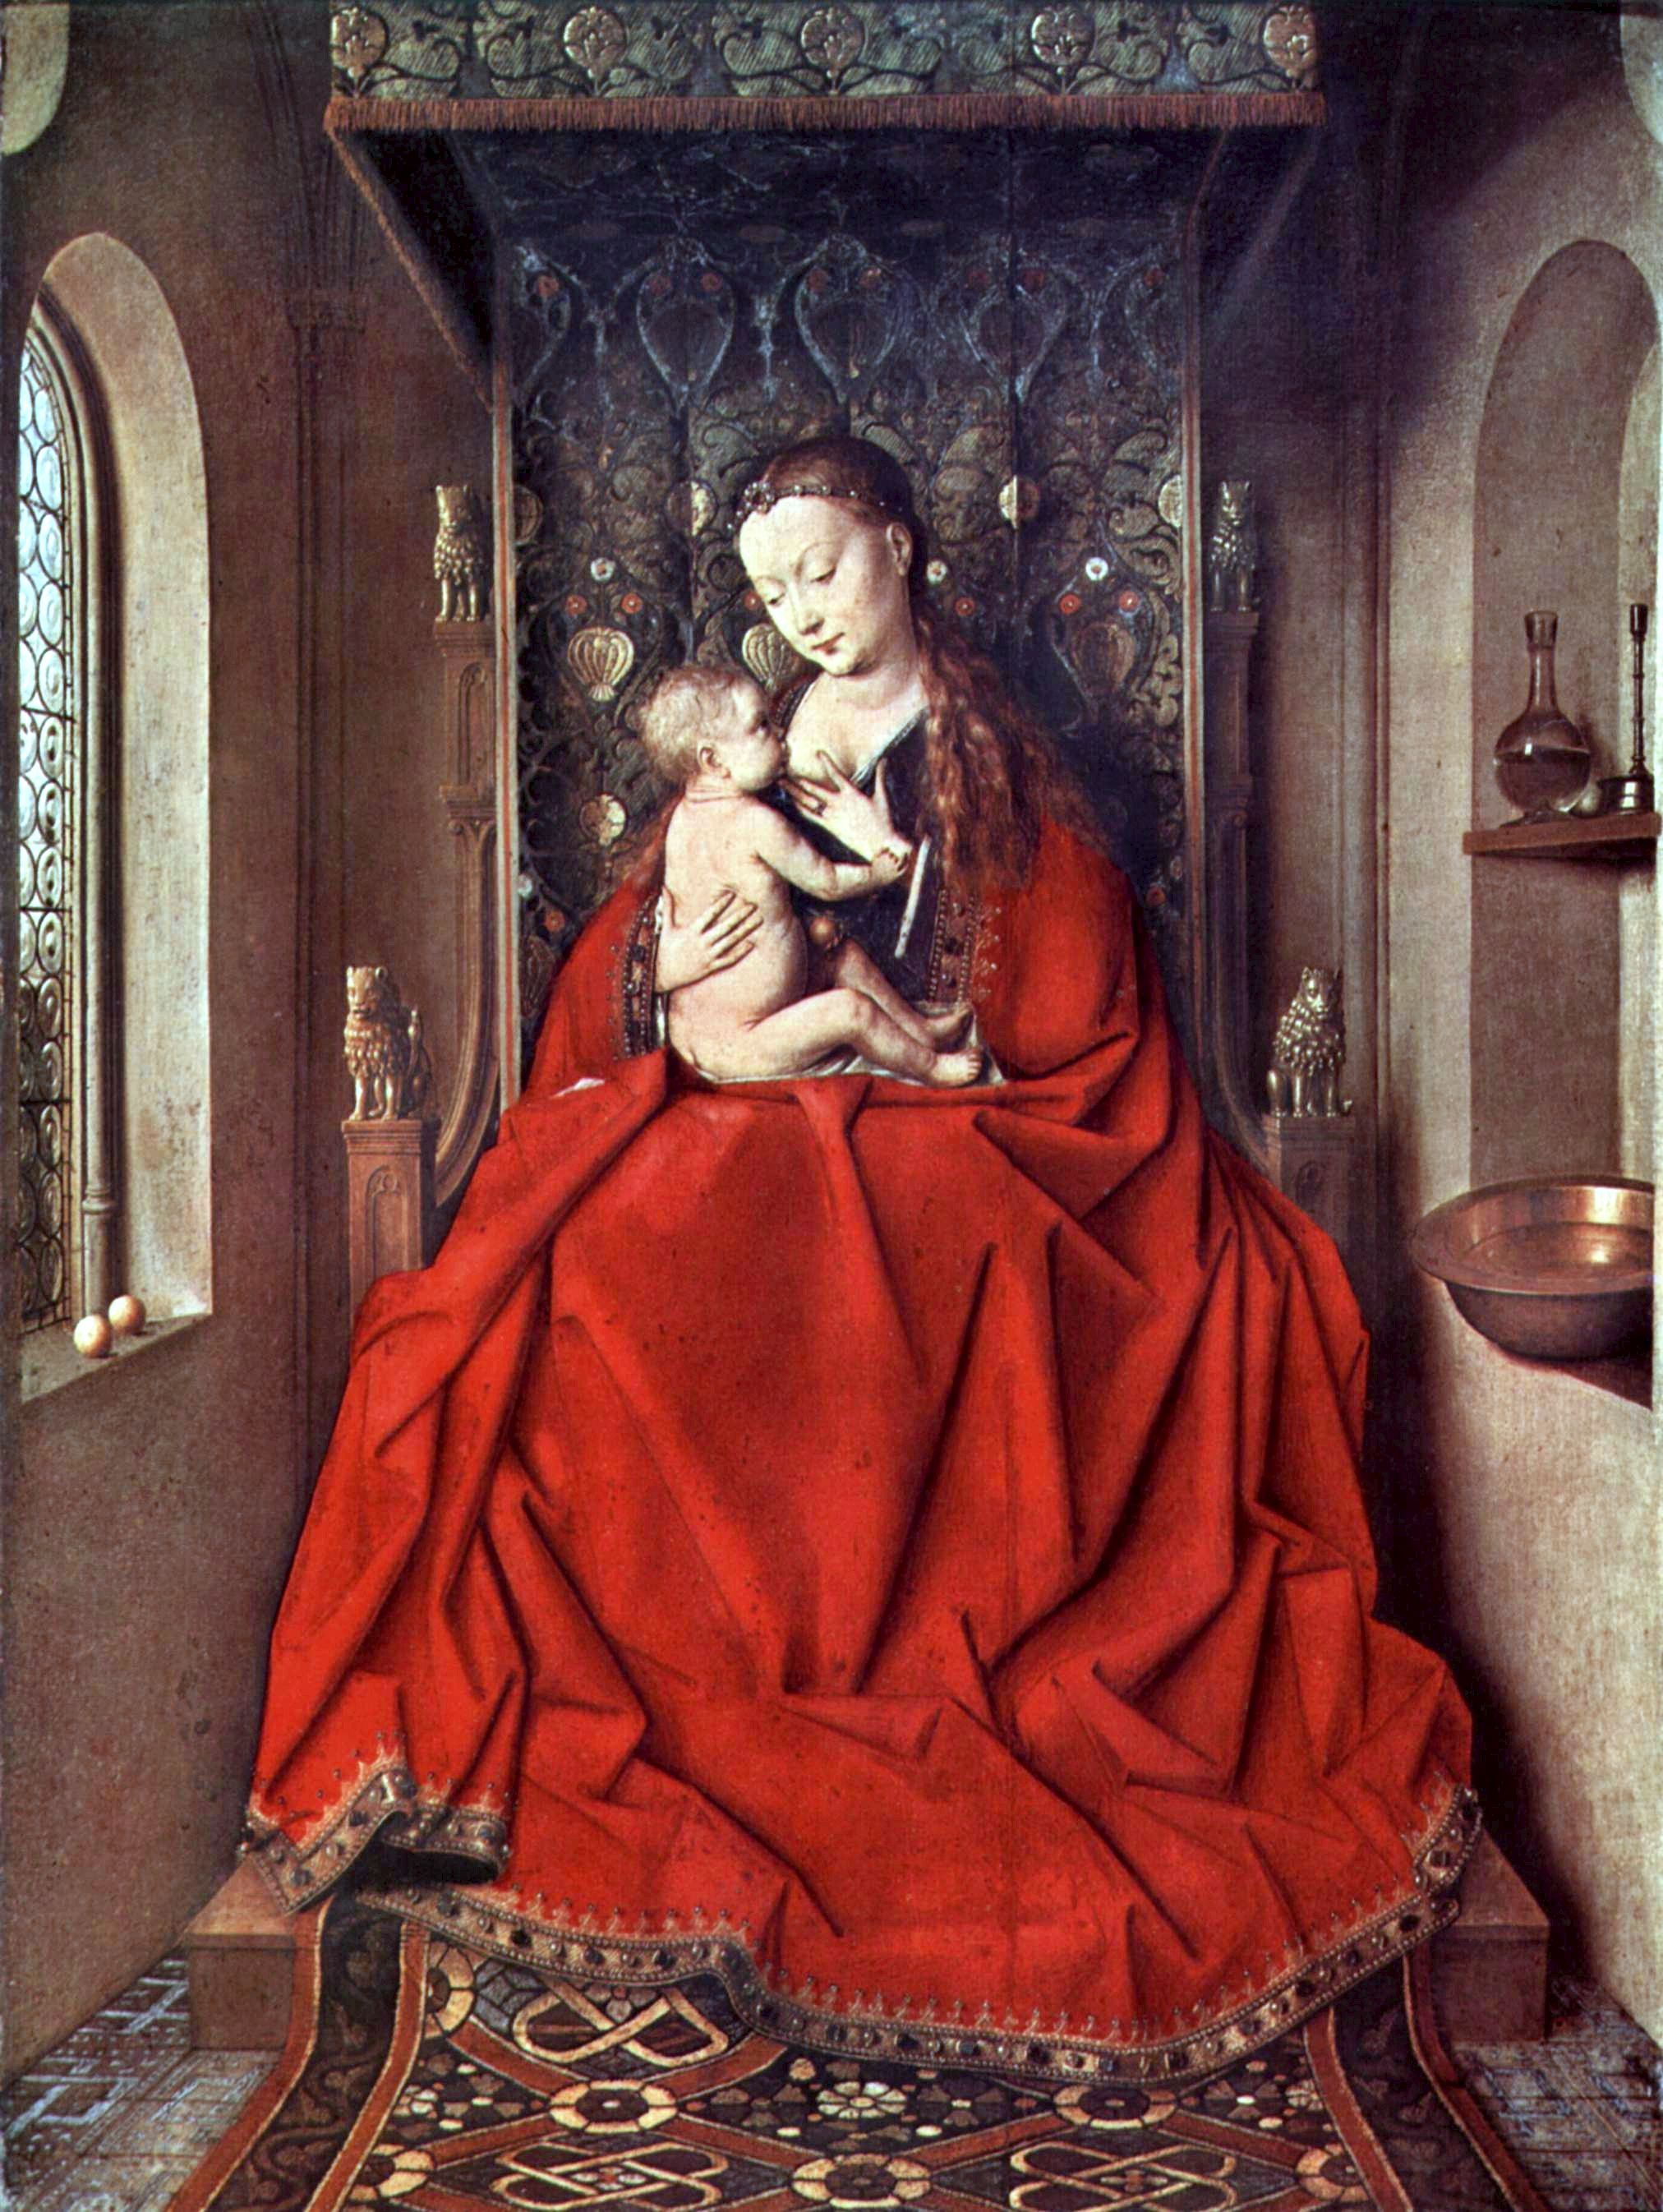 a biography of jan van eyck a flemish painter (biography channel) jan van eyck was distinguished as a talented artist in   european writers of the renaissance was the flemish painter, jan van eyck.